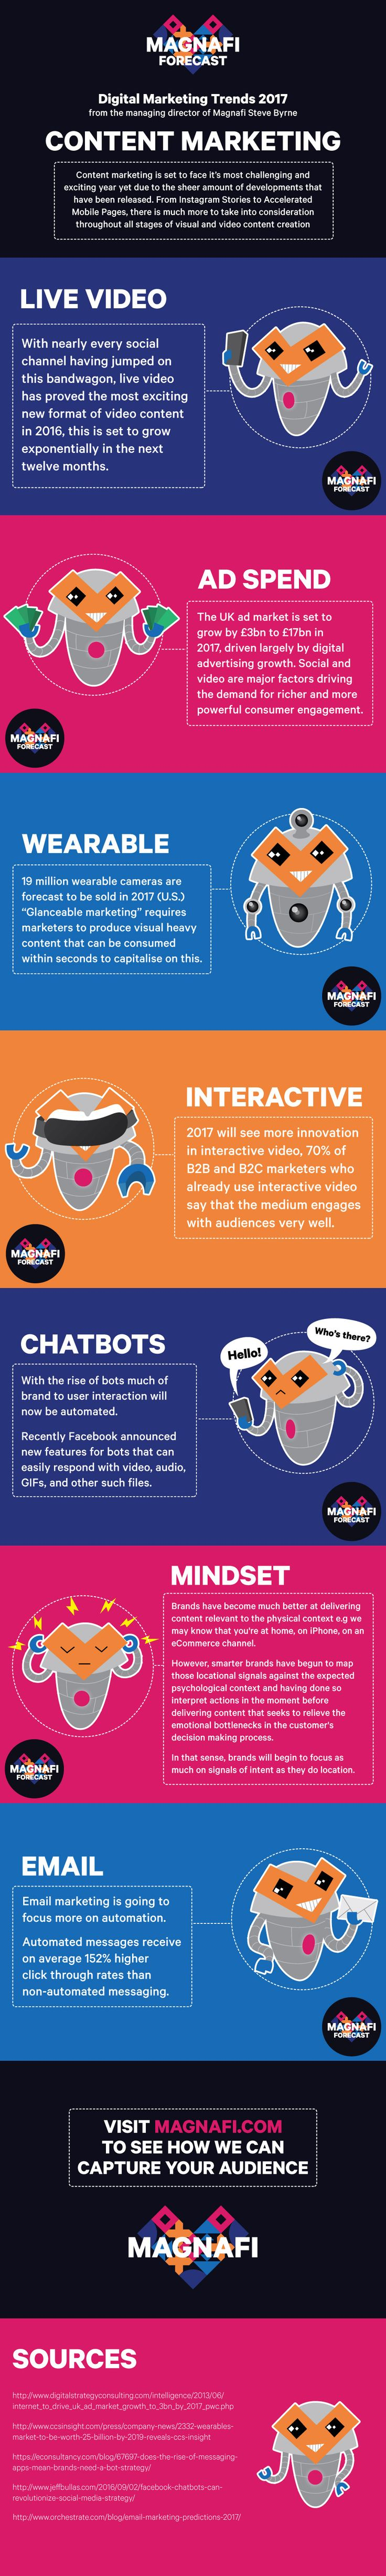 Is Your Business Ready for 2017? 7 Digital Marketing Trends to Know [Infographic]